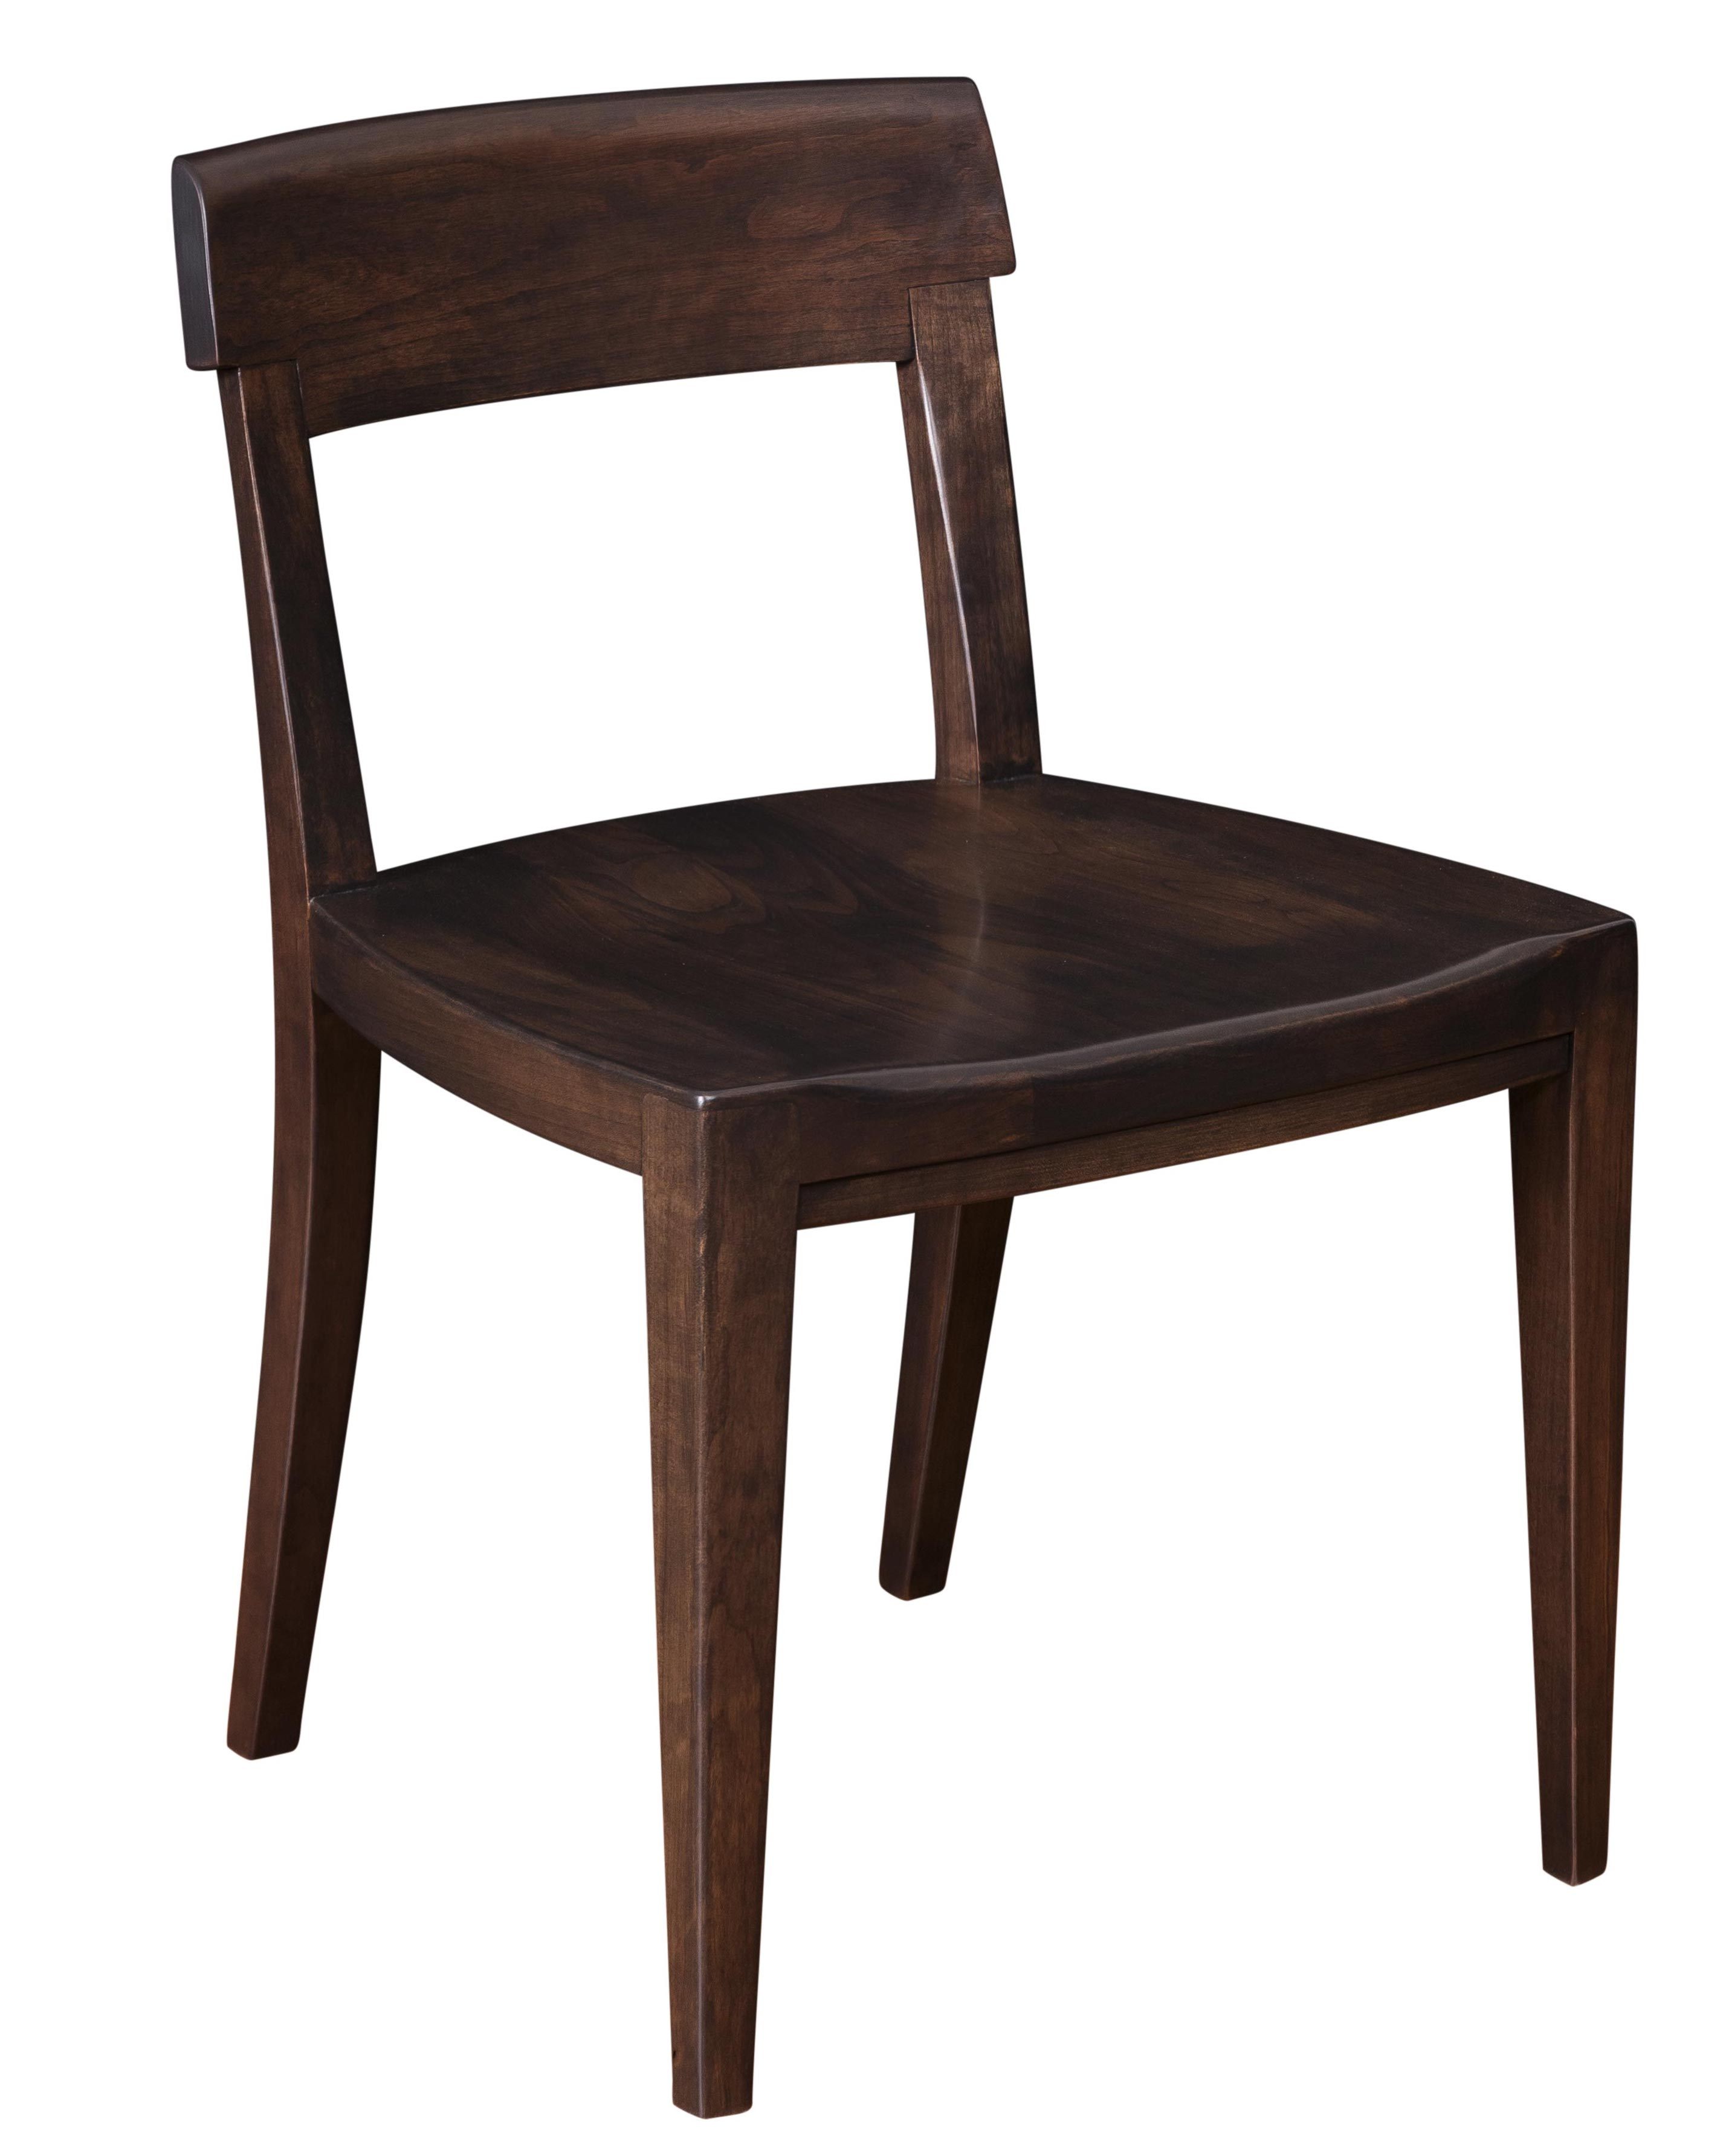 Designer Chesapeake Side Chair Image